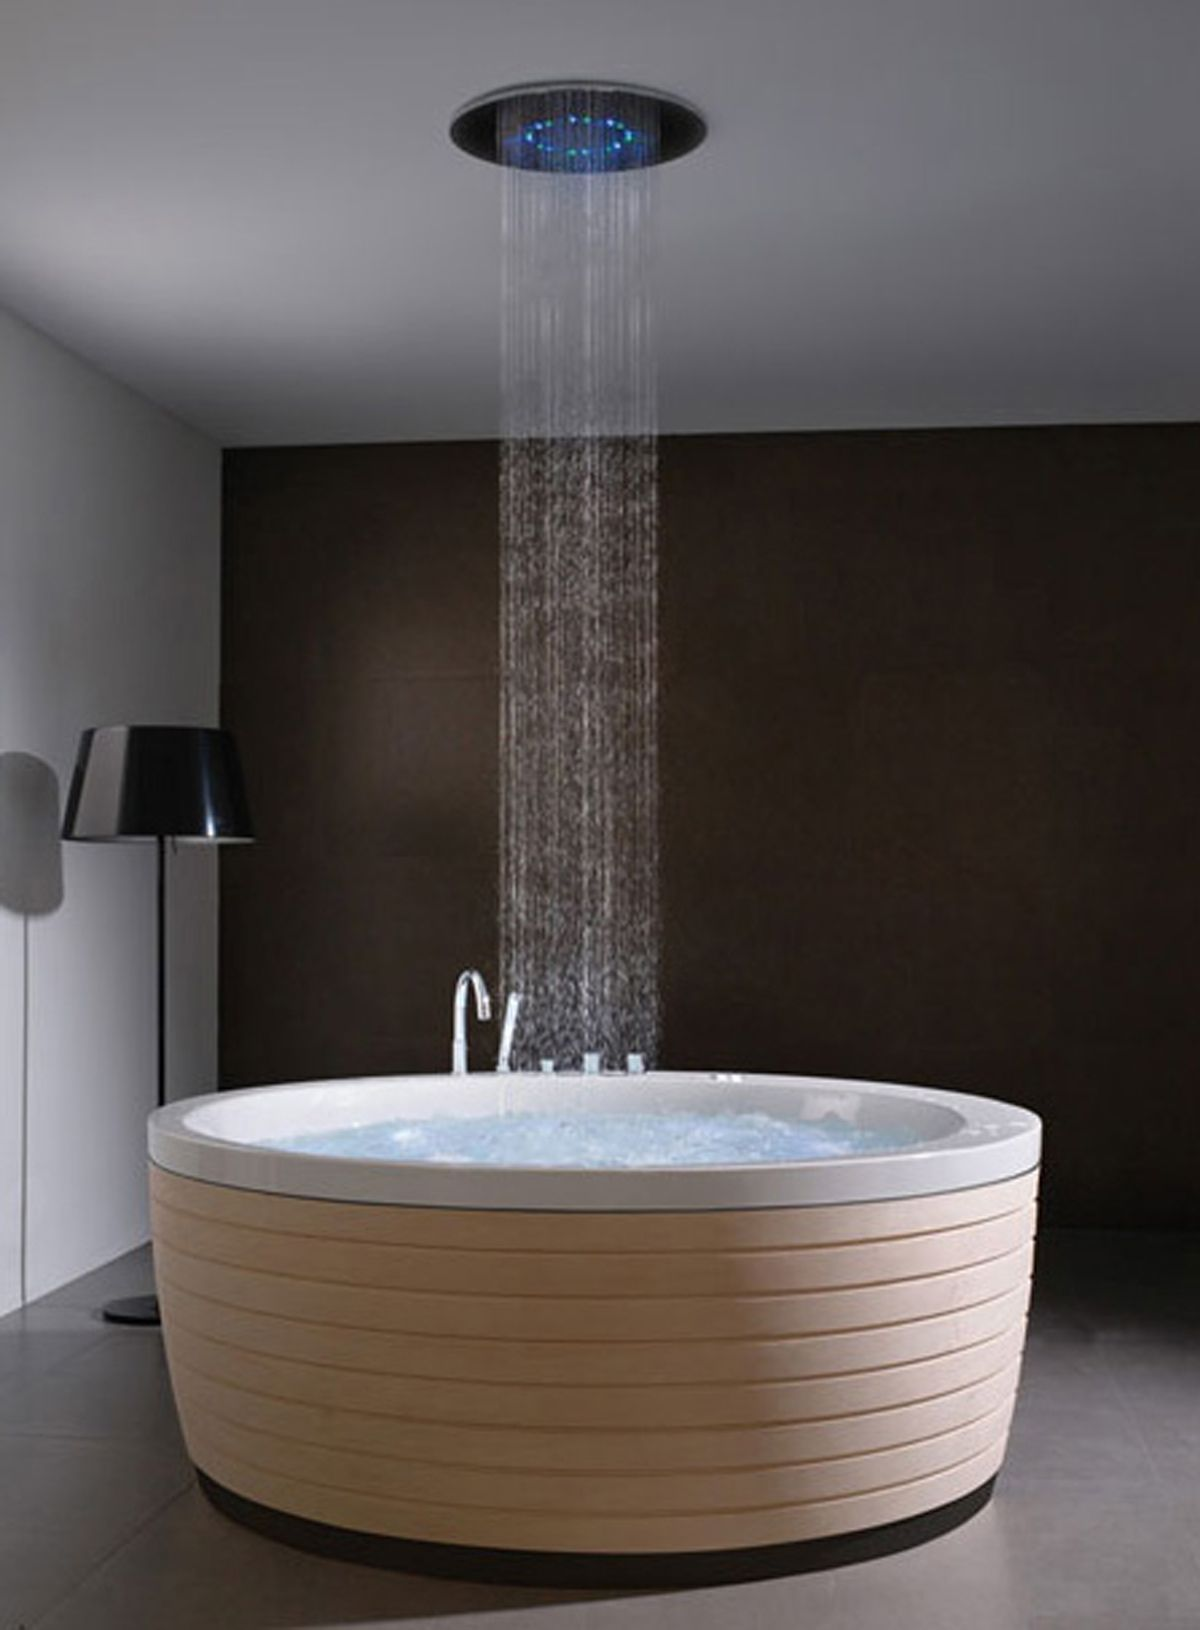 15 Incredible Freestanding Tubs With Showers Bathtub Design